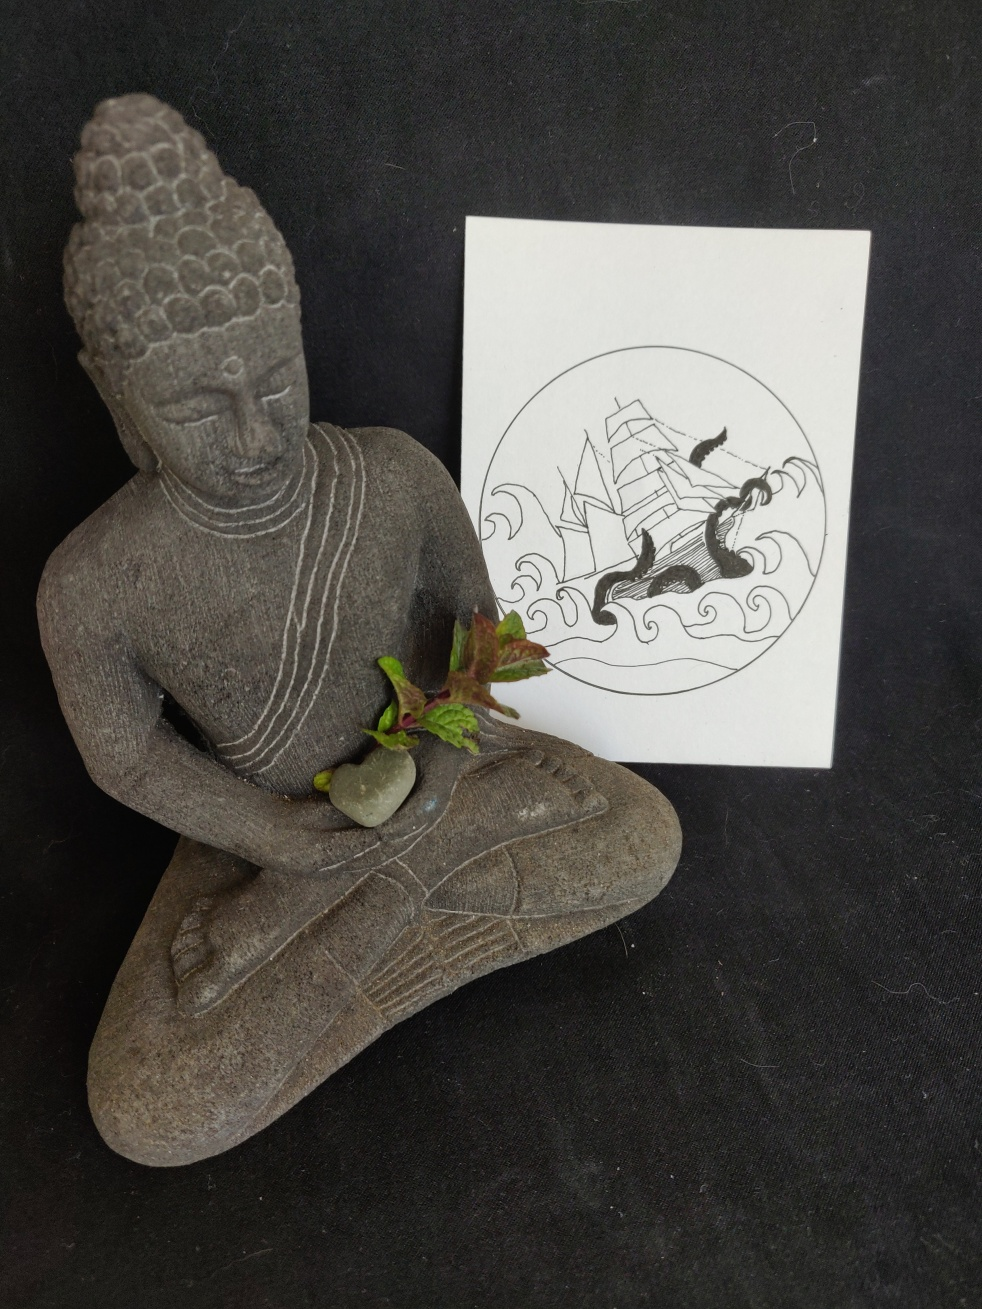 meditating statue with sprig of mint and drawing of a ship in rough waves and kraken tentacles grabbing the ship